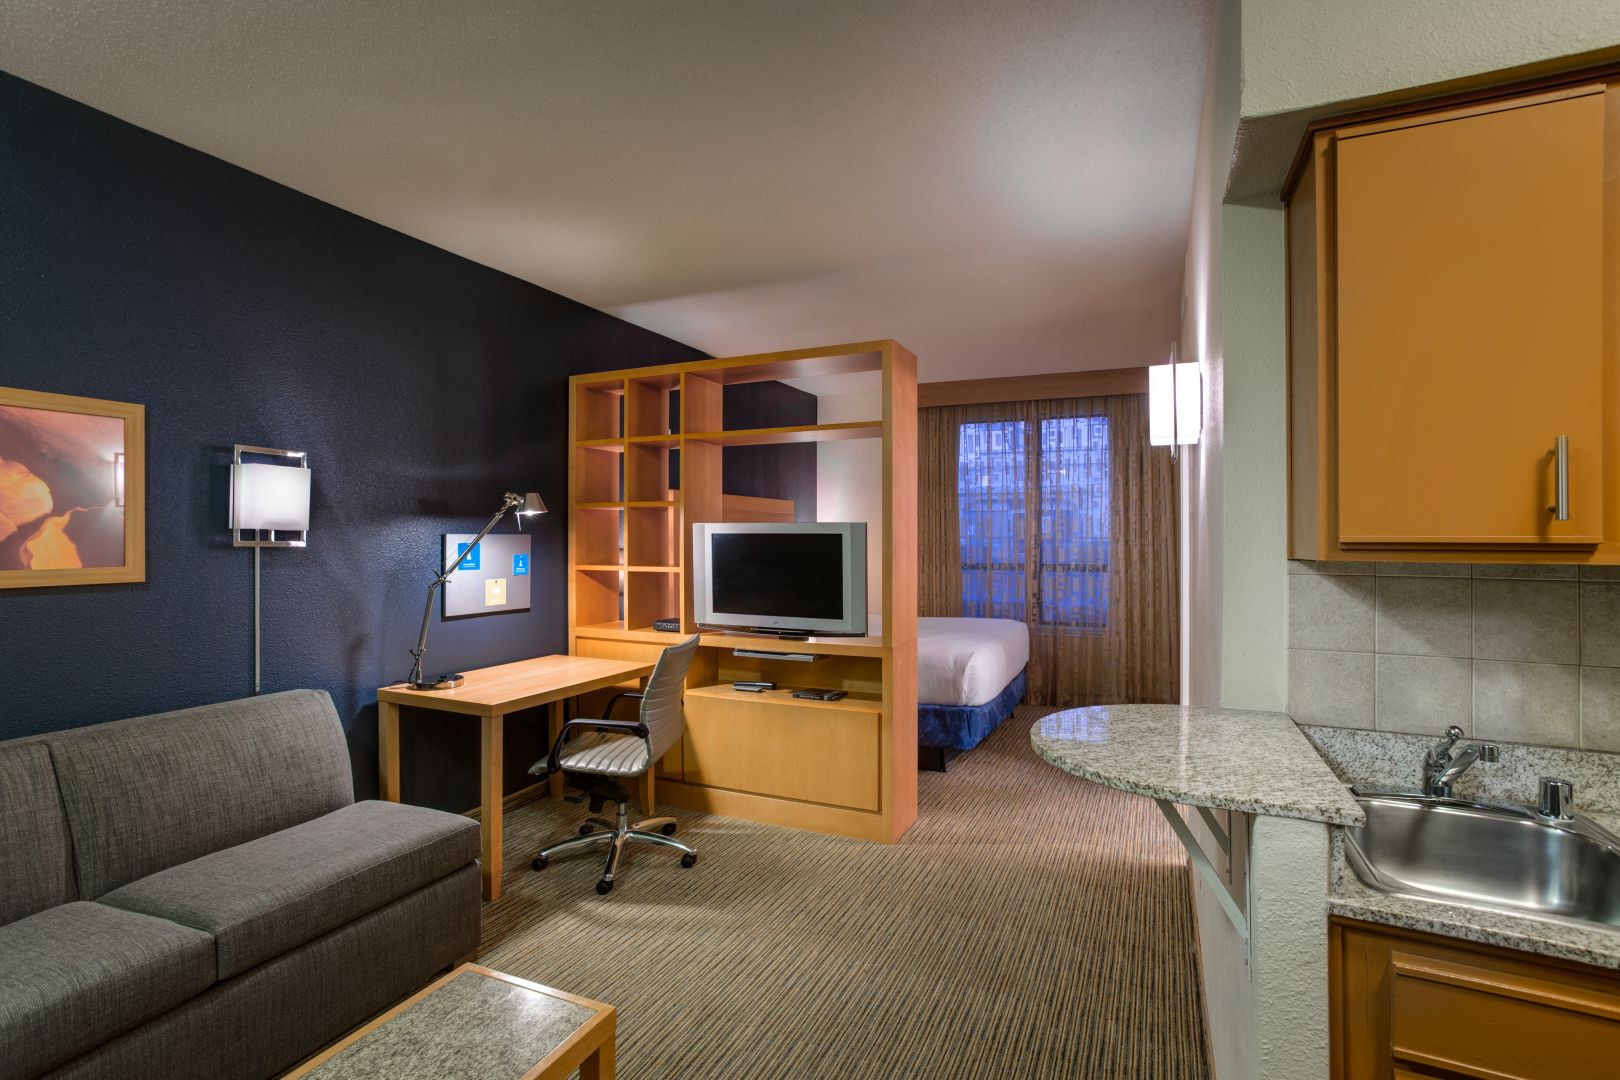 HYATT HOUSE DALLAS/UPTOWN Studio King